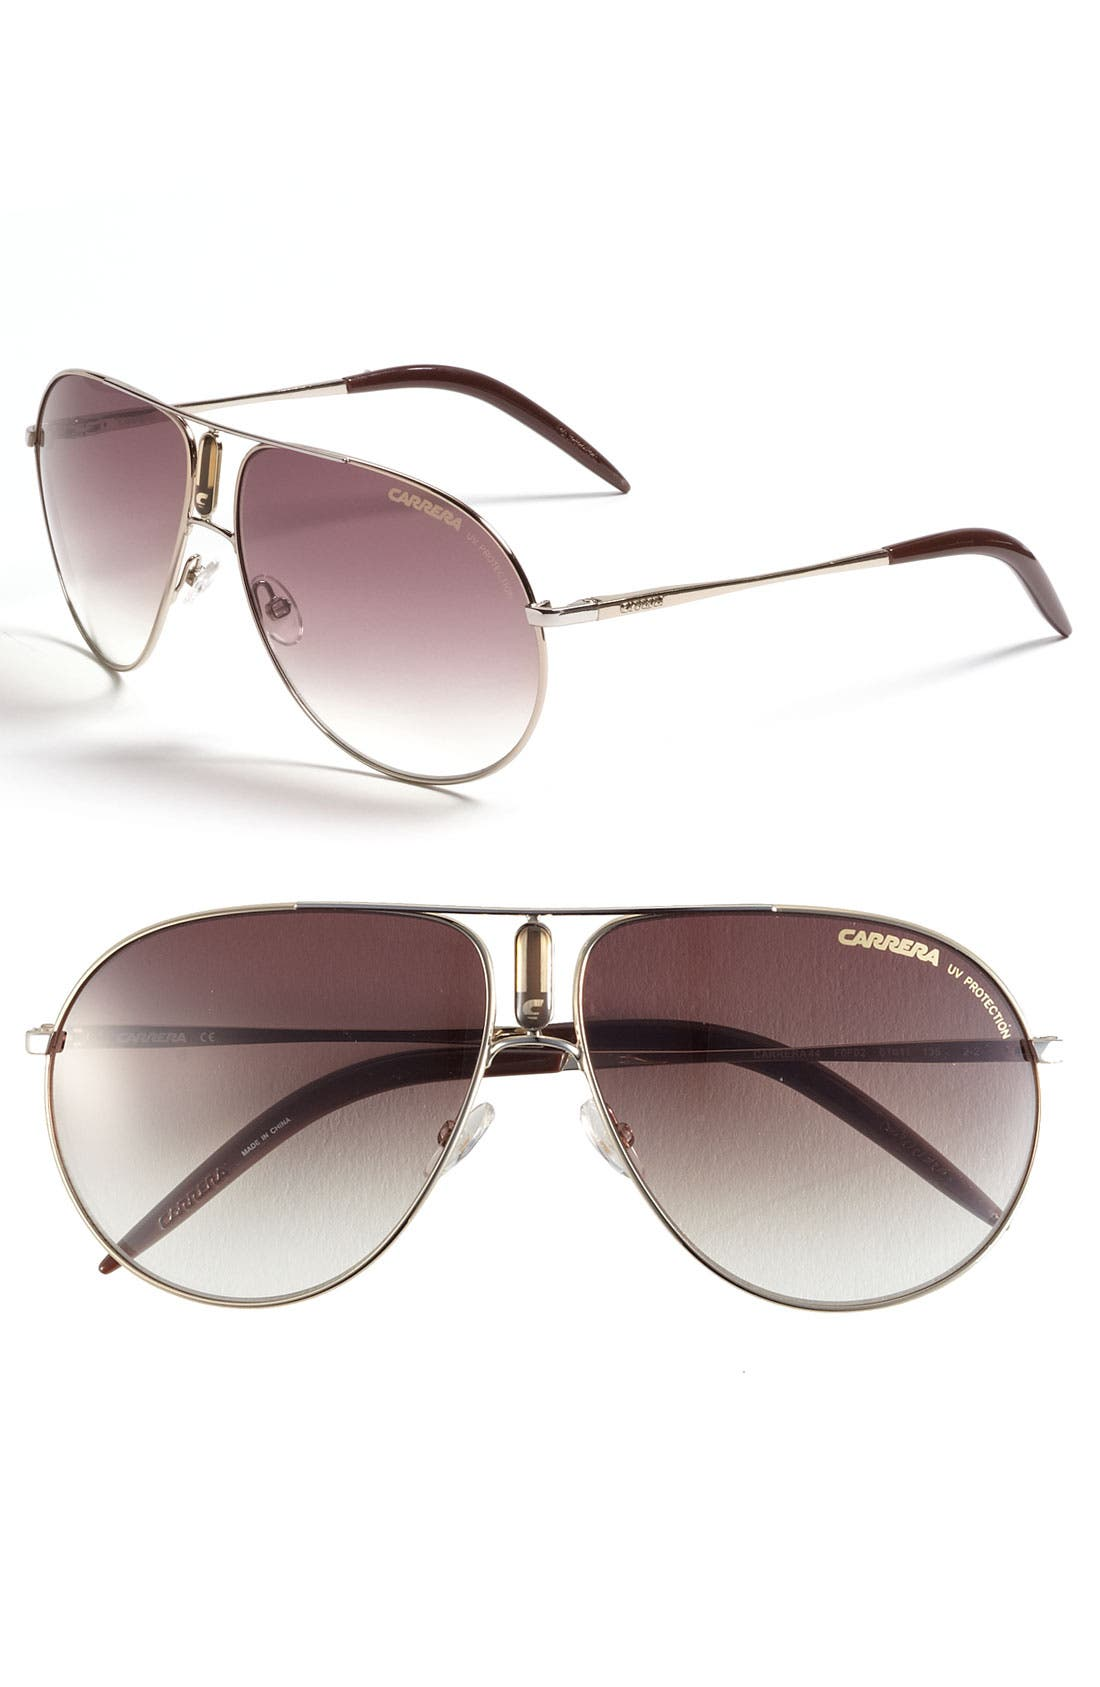 Main Image - Carrera Eyewear 61mm Aviator Sunglasses